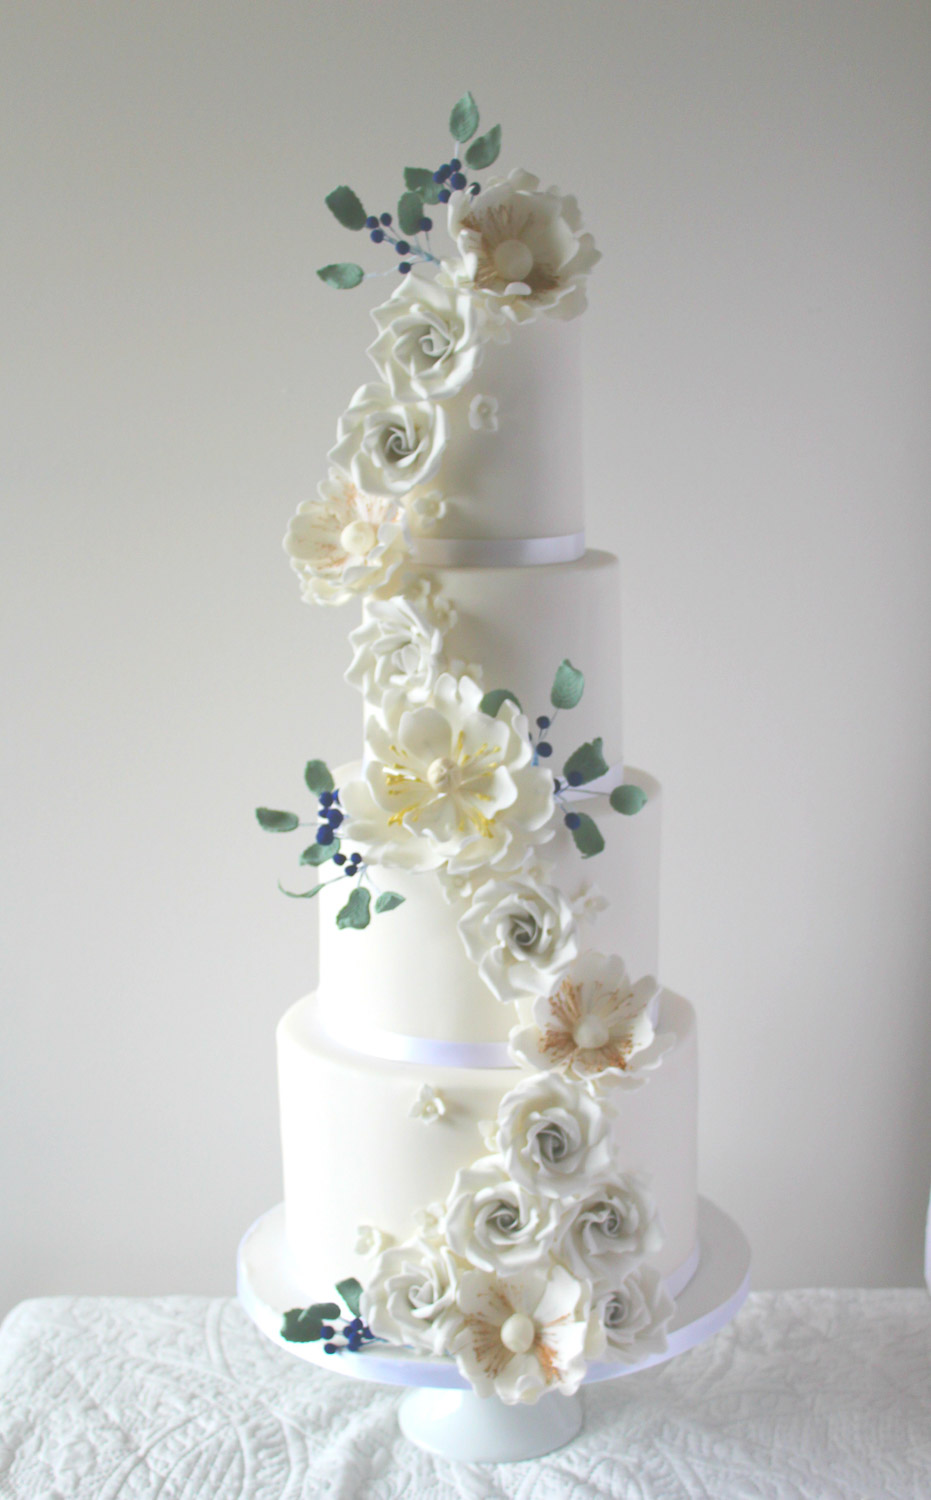 Shades of Grey - Rosewood Cakes Luxury Wedding Cakes Glasgow Scotland - House for an Art Lover Weddings.jpg